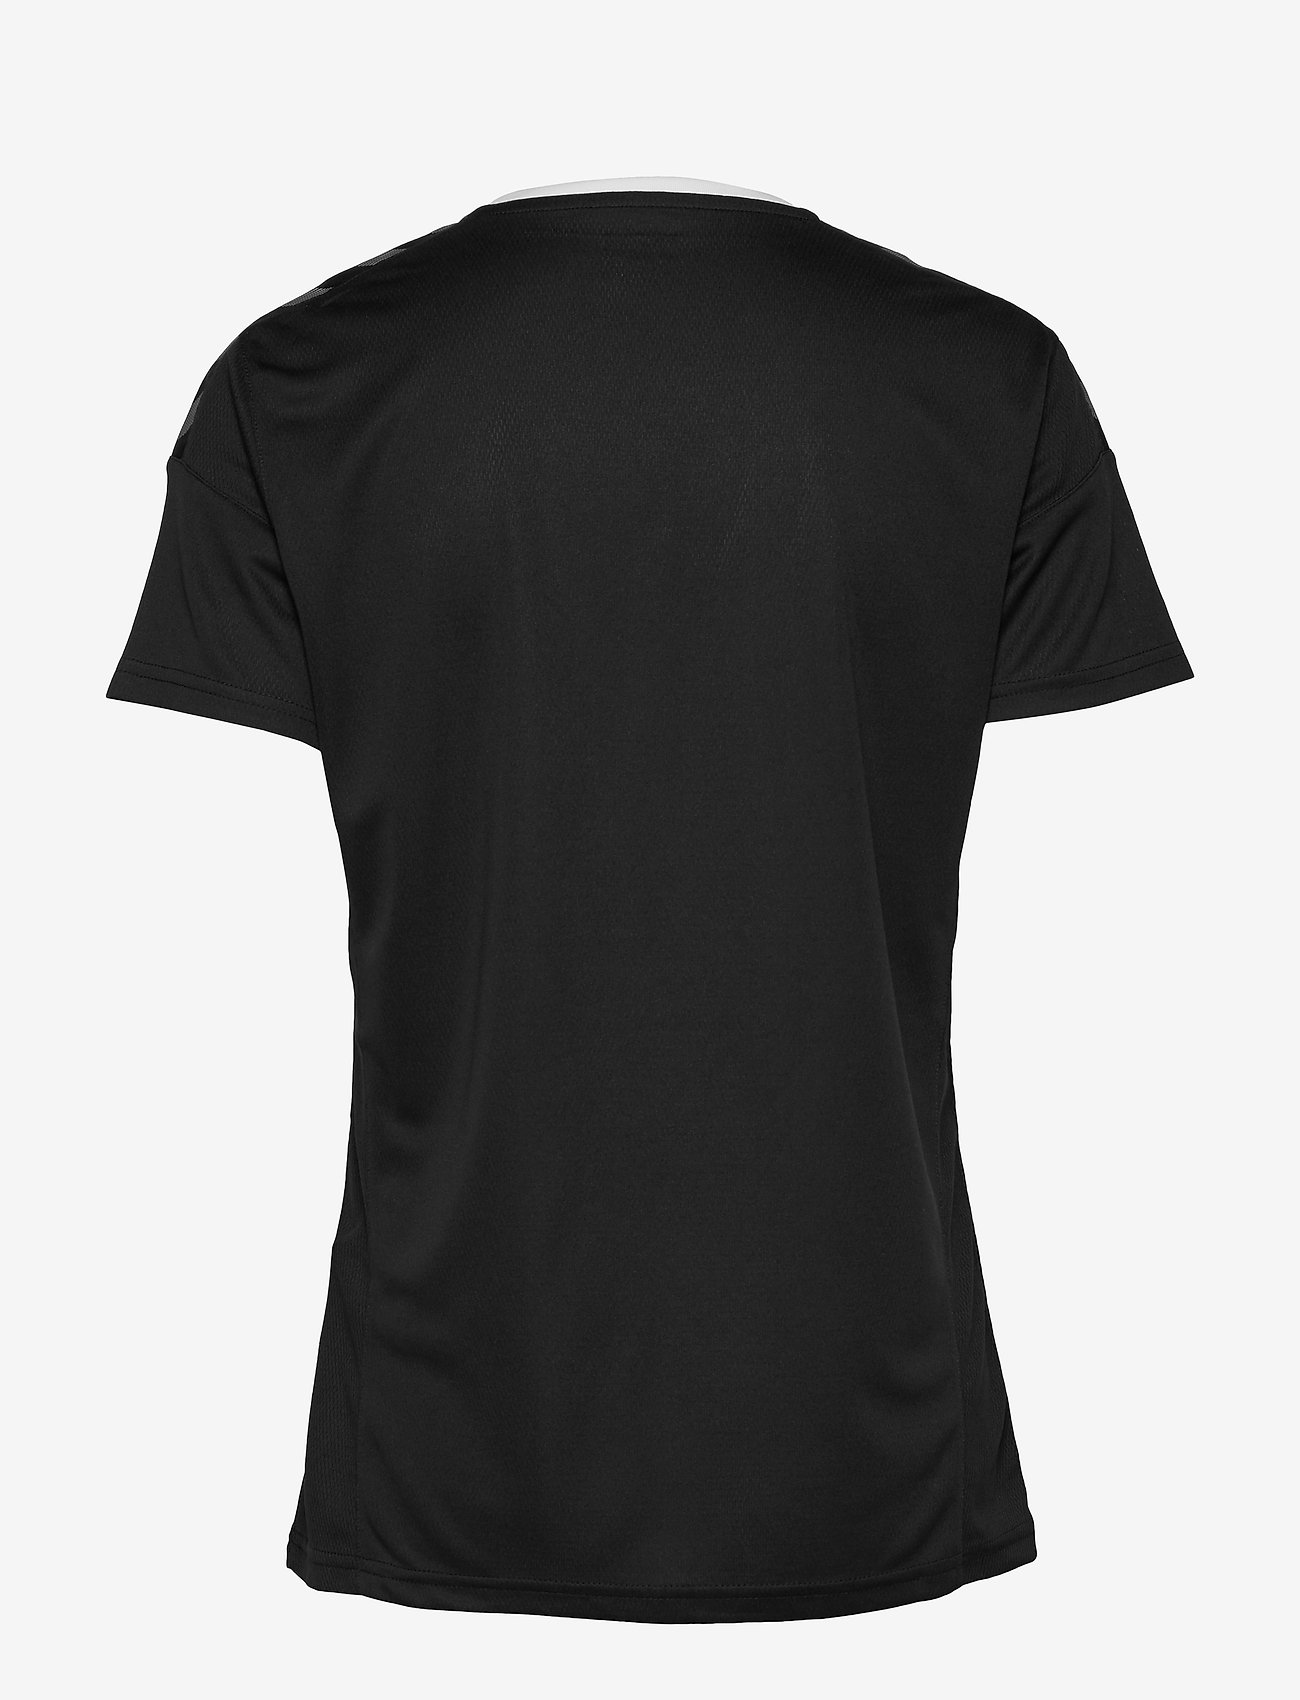 Hummel - hmlAUTHENTIC POLY JERSEY WOMAN S/S - t-shirts - black/white - 1